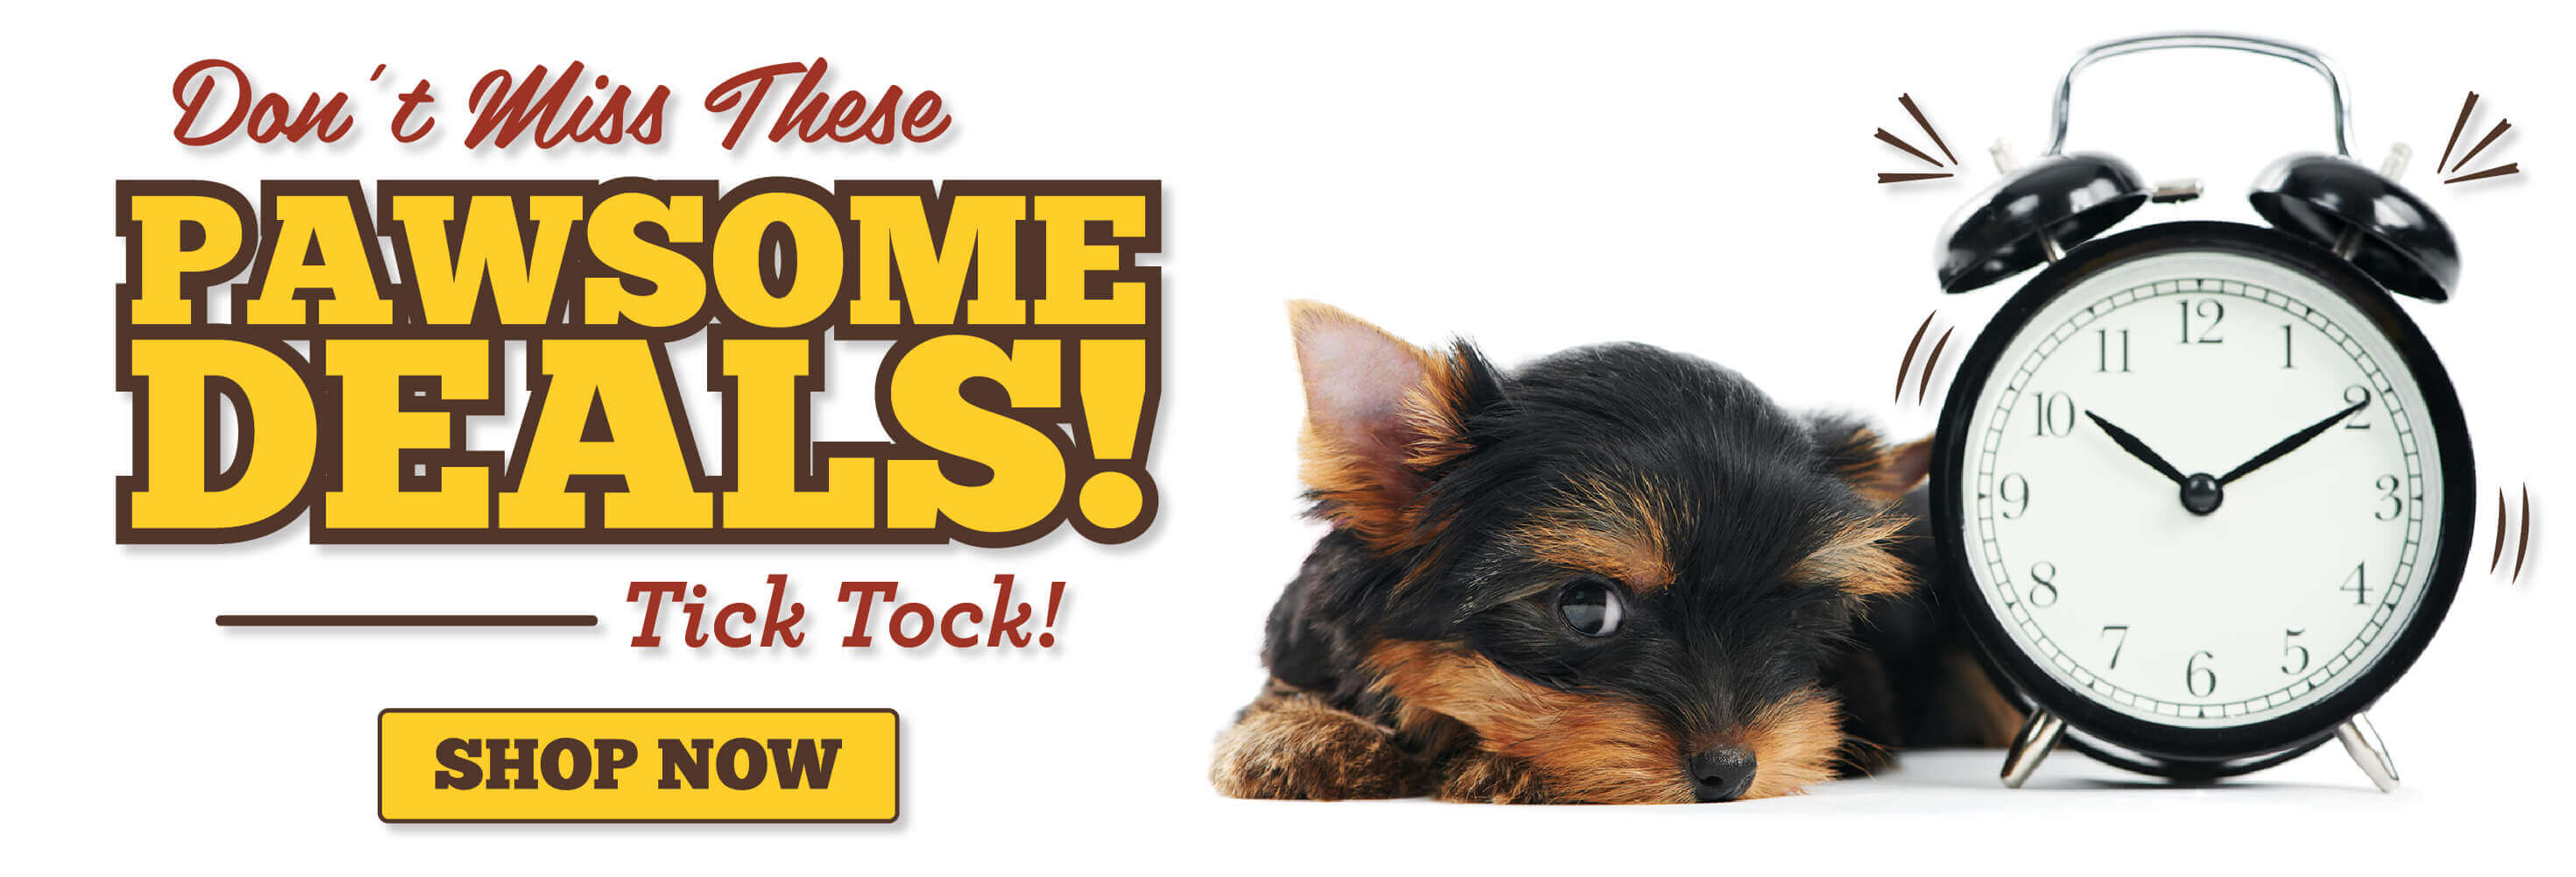 Don't miss these pawsome deals tick tock, link to shop now,picture of dog next to an alarm clock